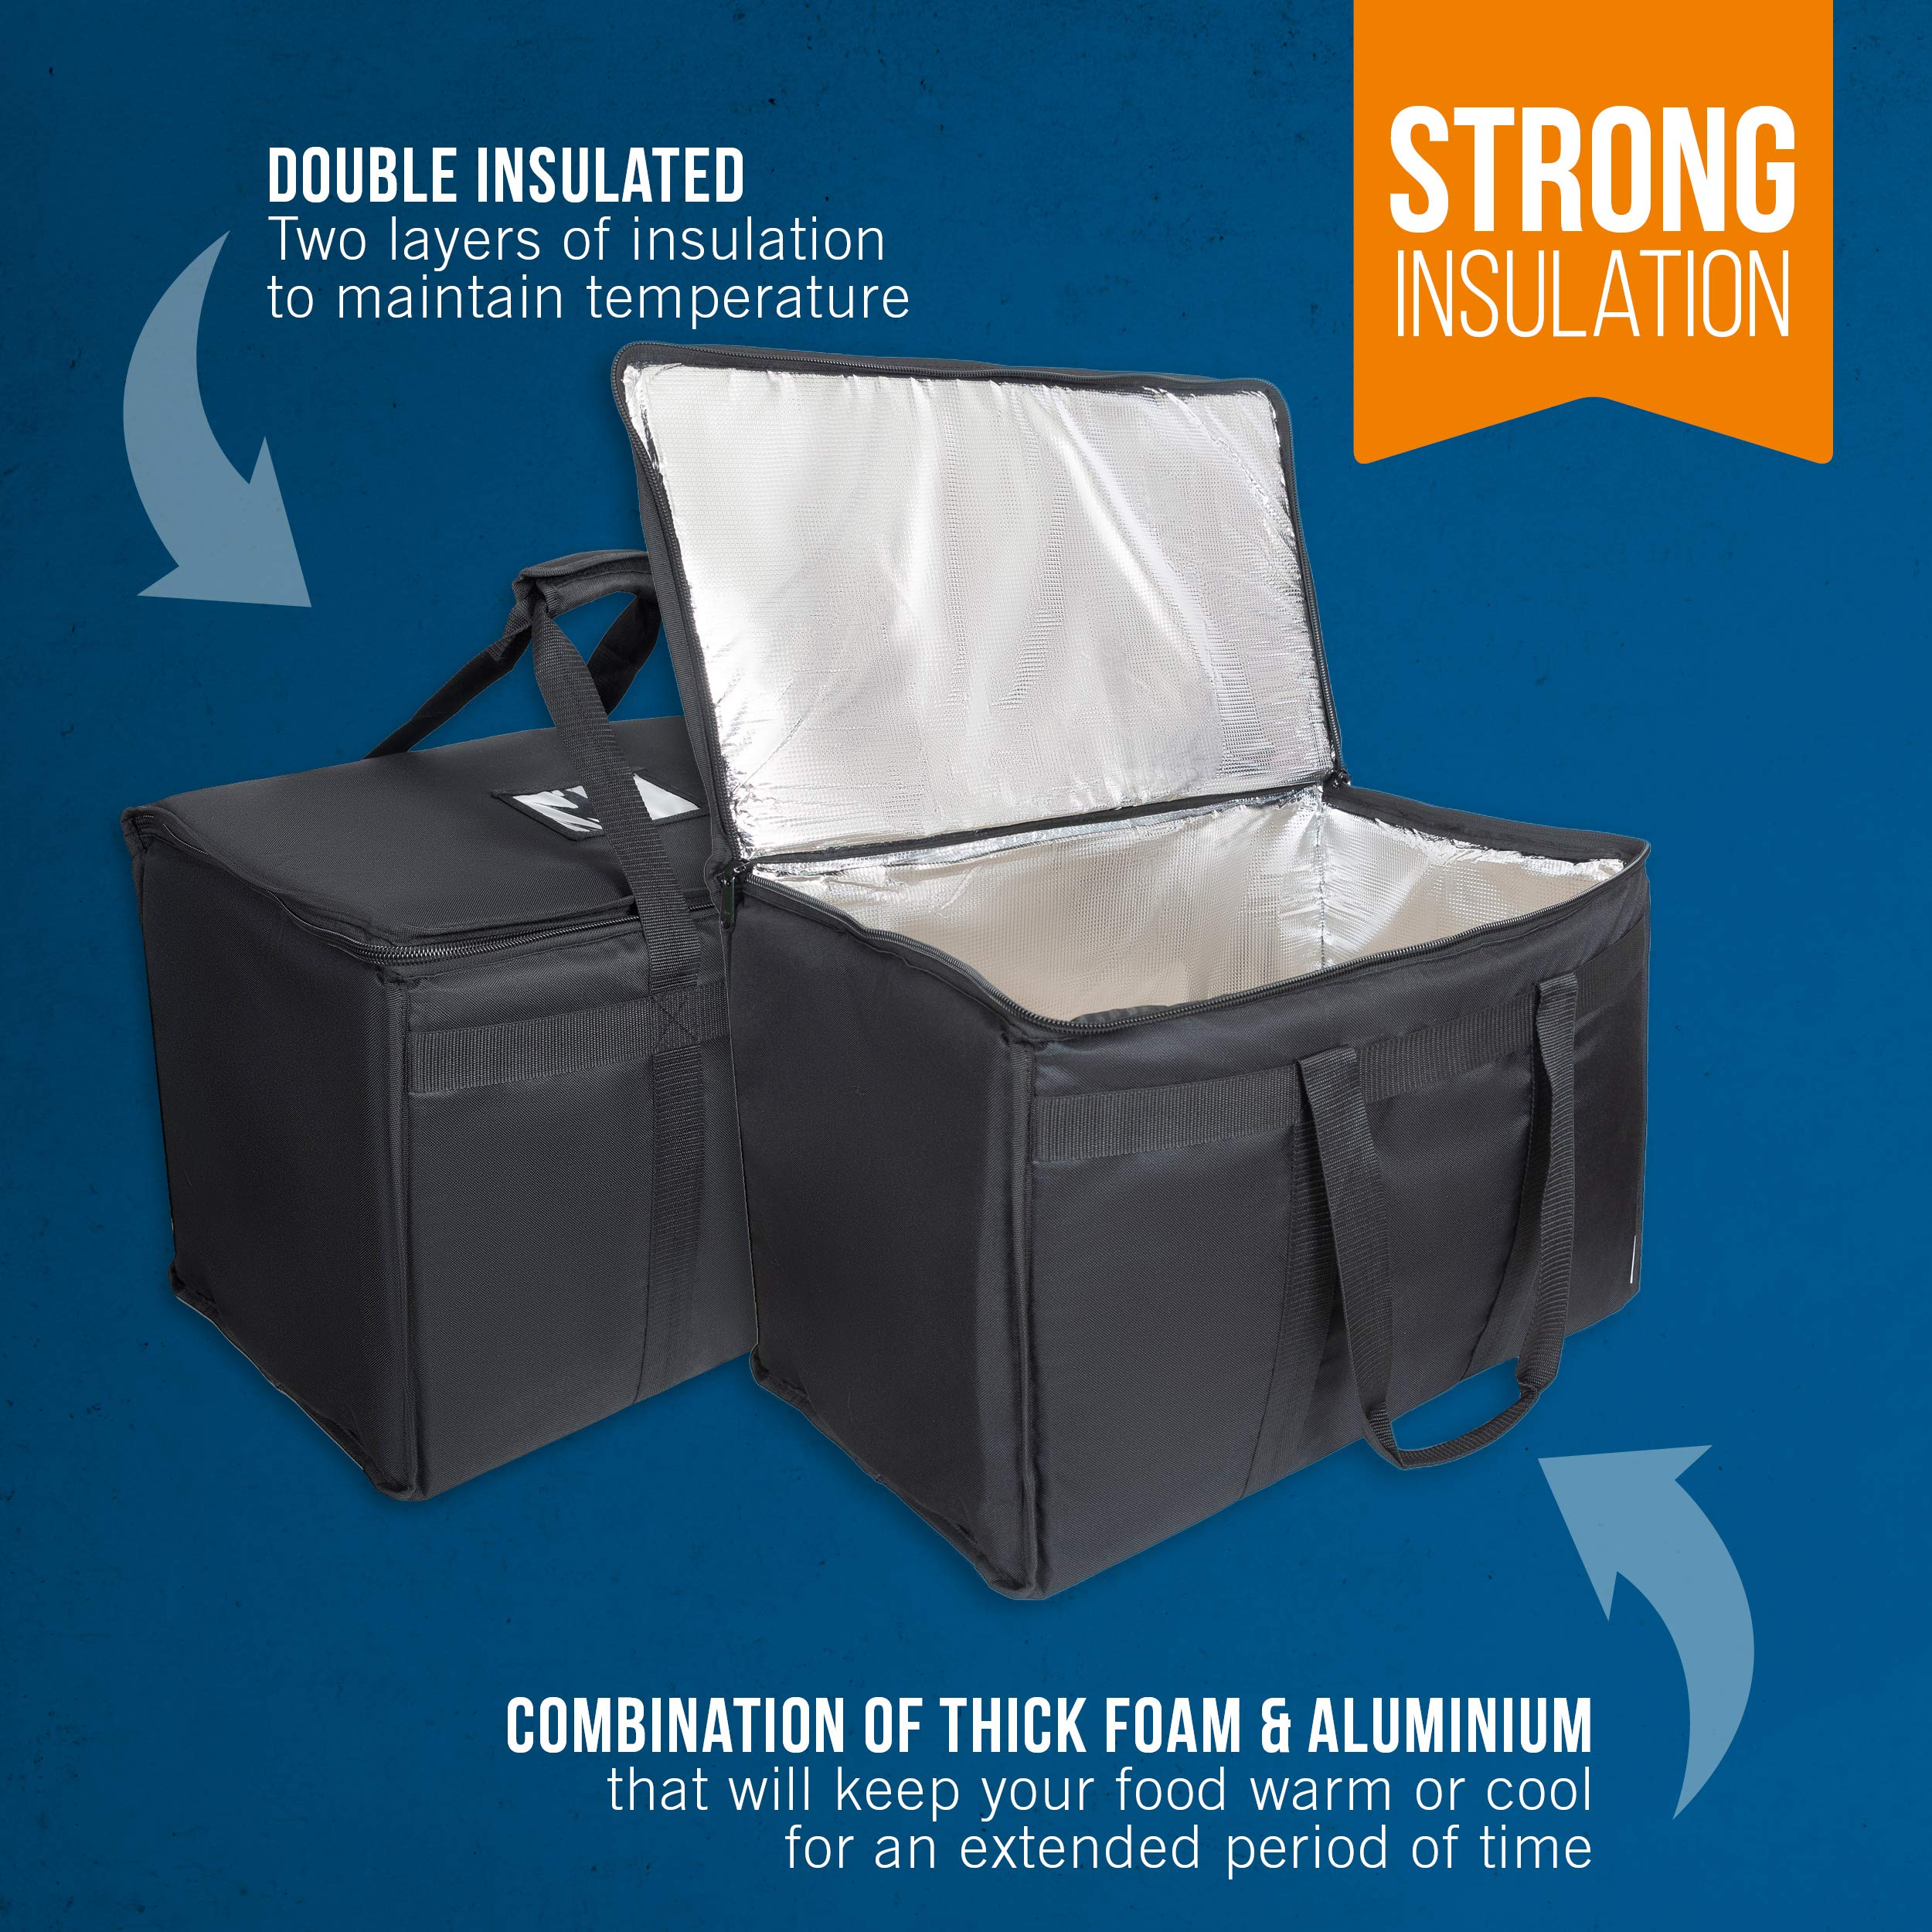 """Food Delivery Bag. Heavy Duty Bag with Strong Insulation. Reinforced Stitching for Heavy Loads. Perfect for Food Delivery & Commercial Transportation. Fit Chafing Trays. Large Capacity (23""""x14""""x15""""). by Trust the Fresh (Image #4)"""